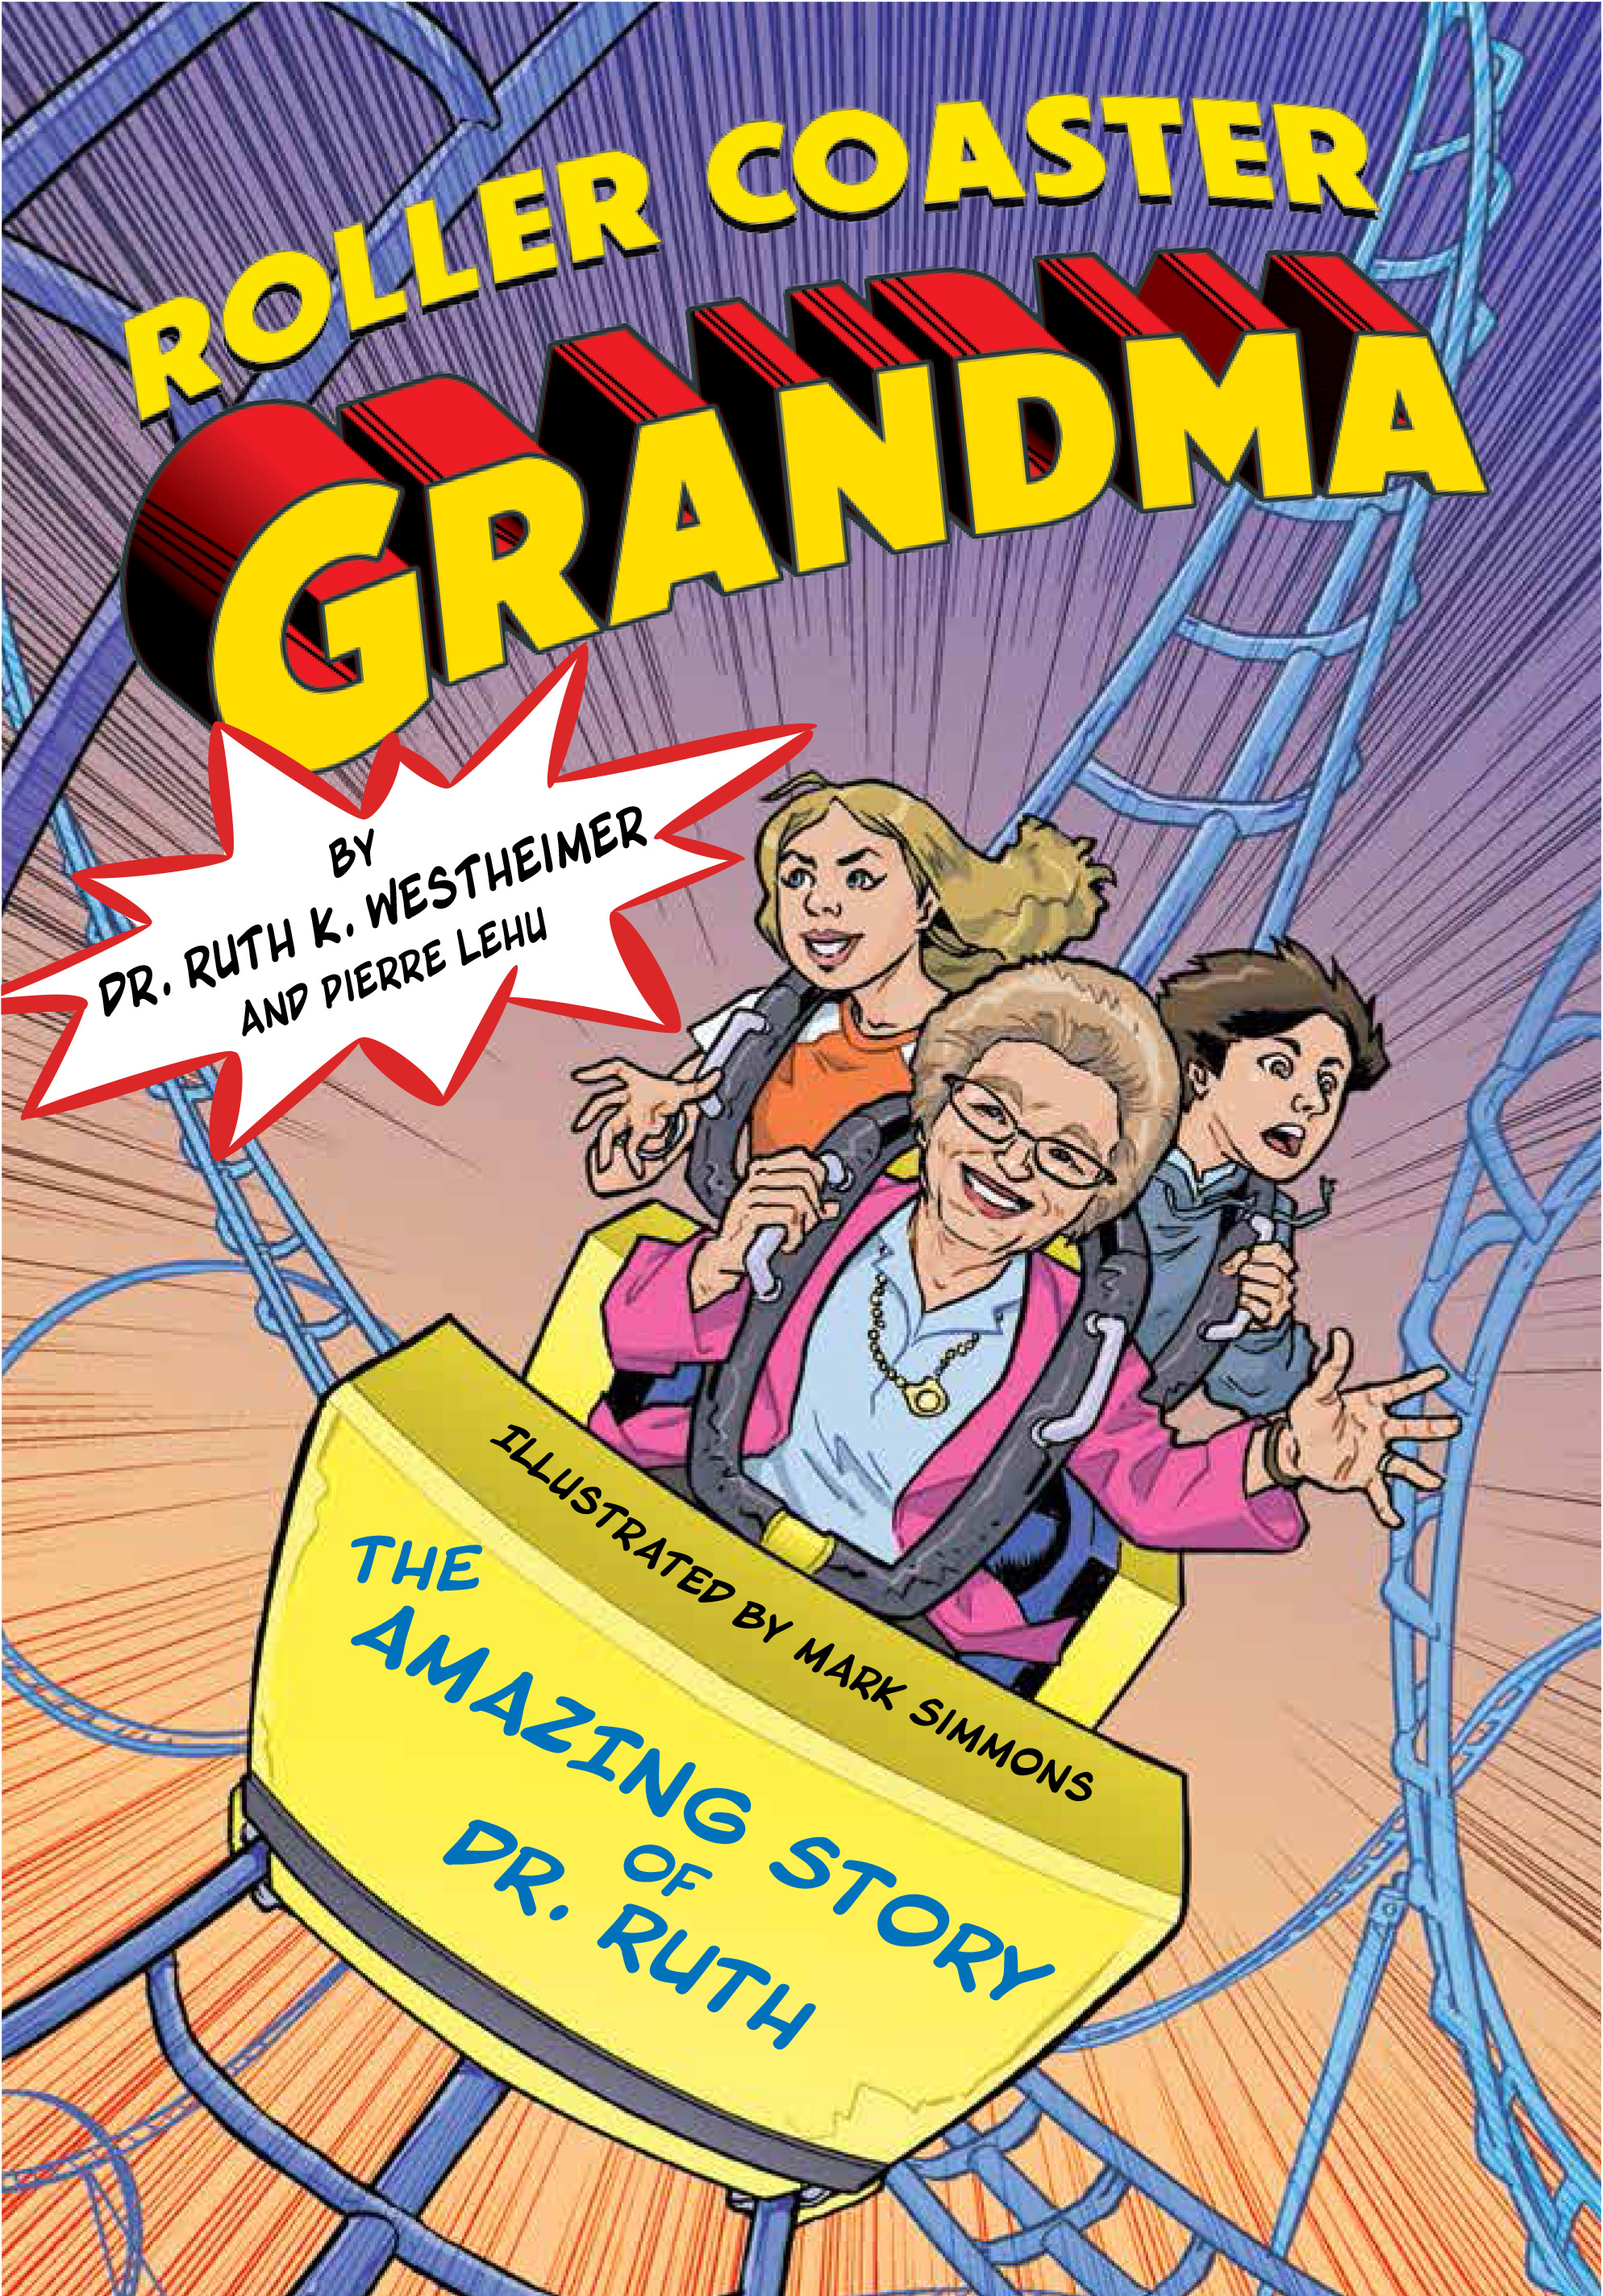 Dr. Ruth, Author of Roller Coaster Grandma, to Headline Jewish Comic Con